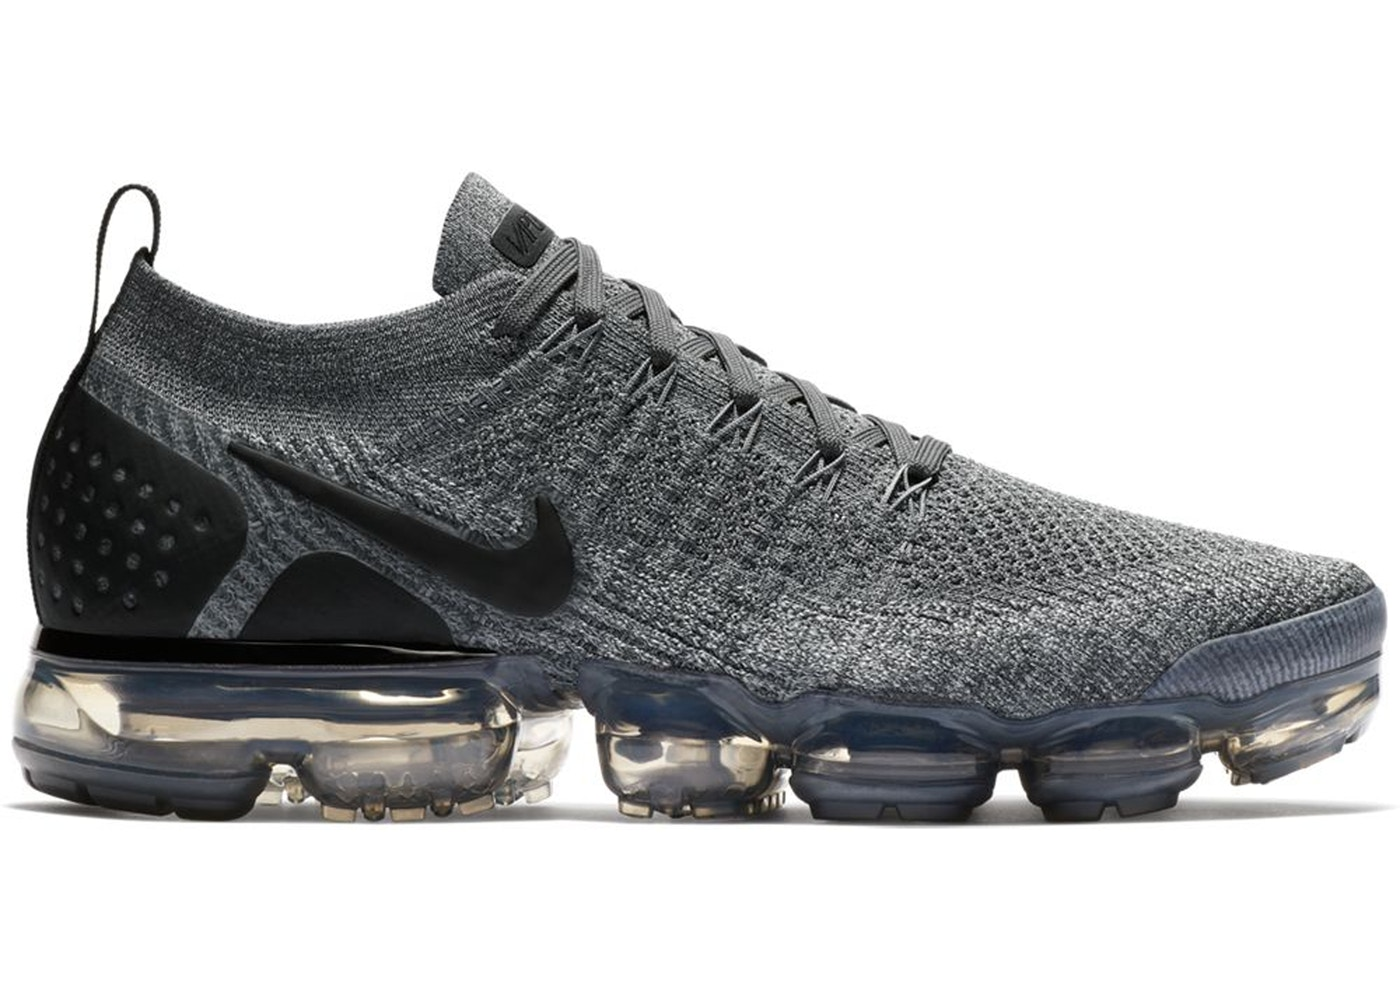 218fea8f79c Air VaporMax 2 Dark Grey - 942842-002